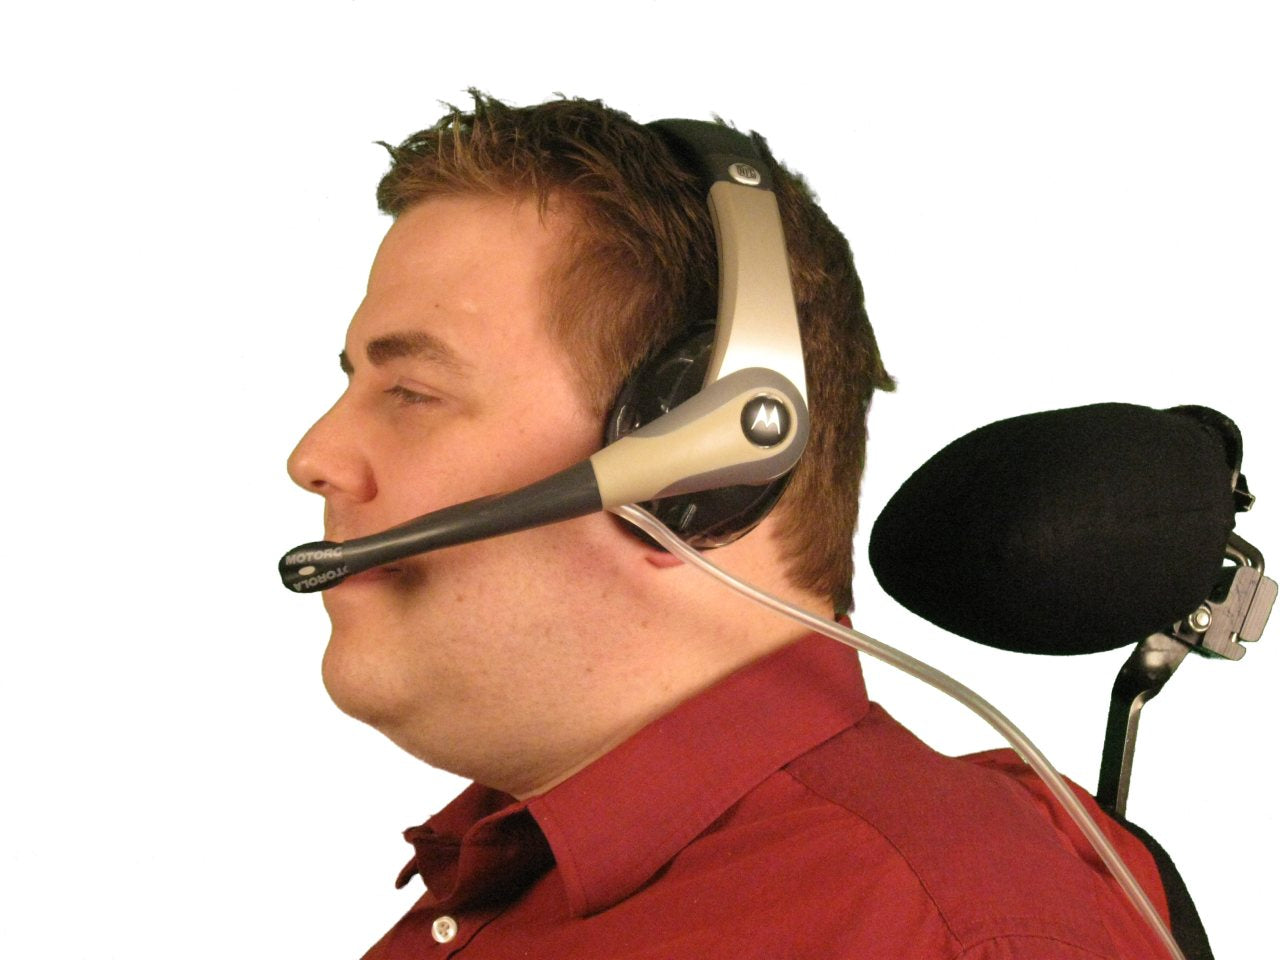 Sip-n-Puff Xbox 360 Motorola NFL-Style Gaming Headset - 3.5mm Stereo Headphone Jack - Broadened Horizons Direct